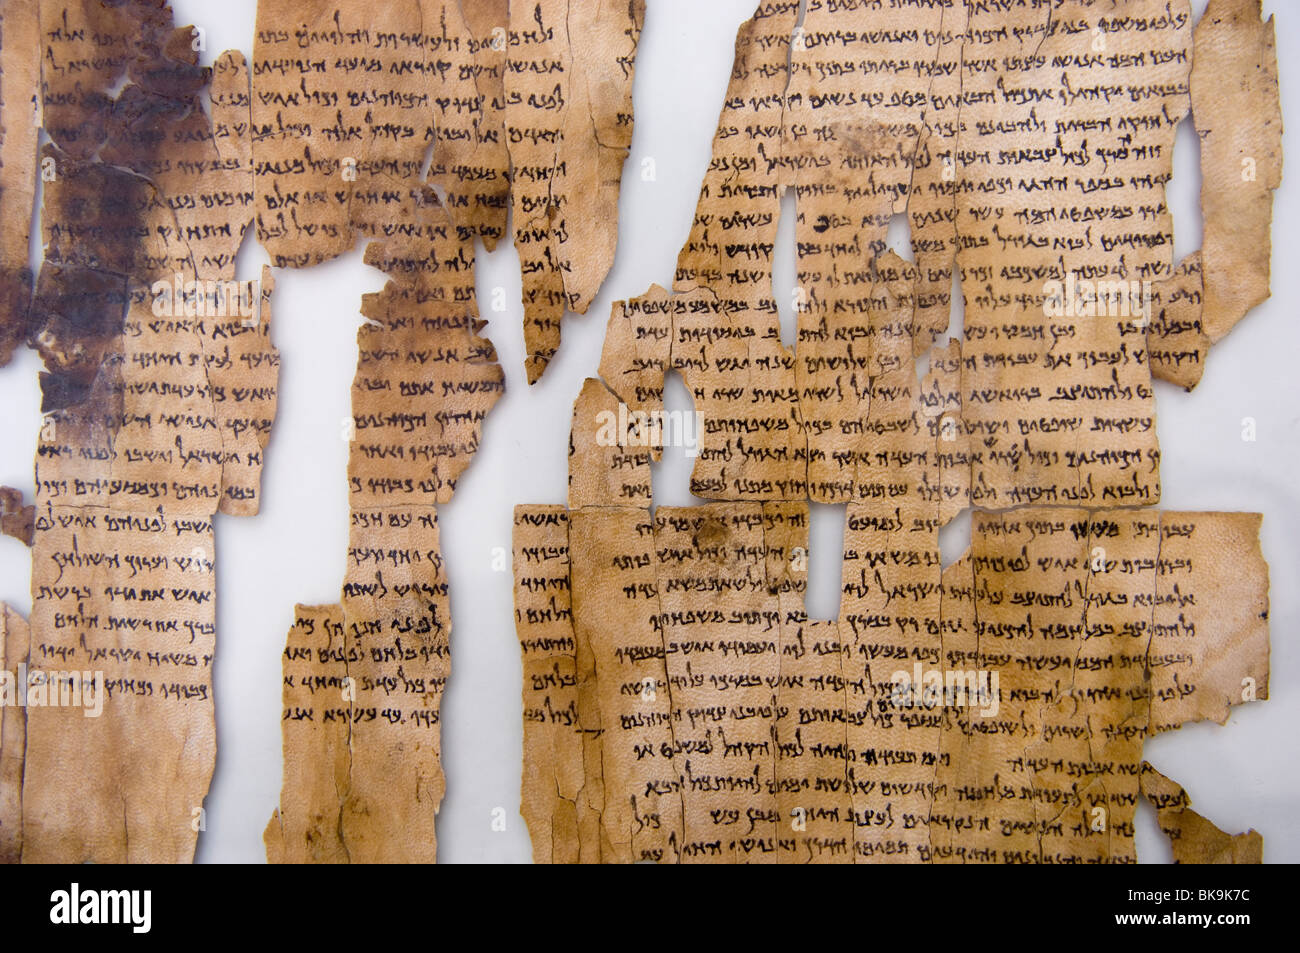 Detail of the Dead Sea Scrolls.  A fragment of Isaiah.  National Archeological Museum, Amman, Jordan. - Stock Image